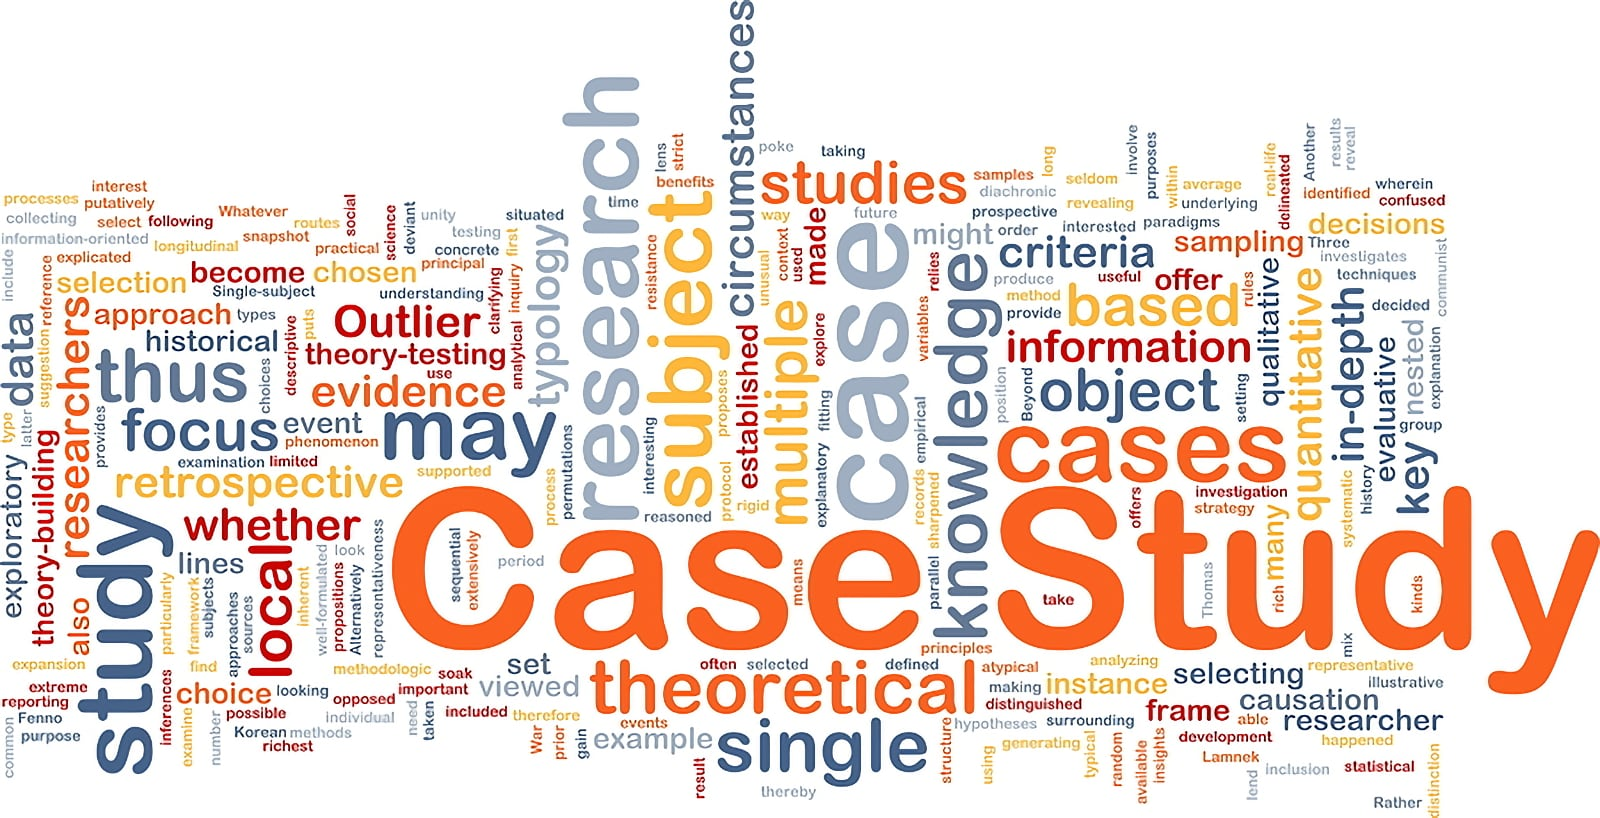 Word cloud concept showing relevant related words related to the topic case study